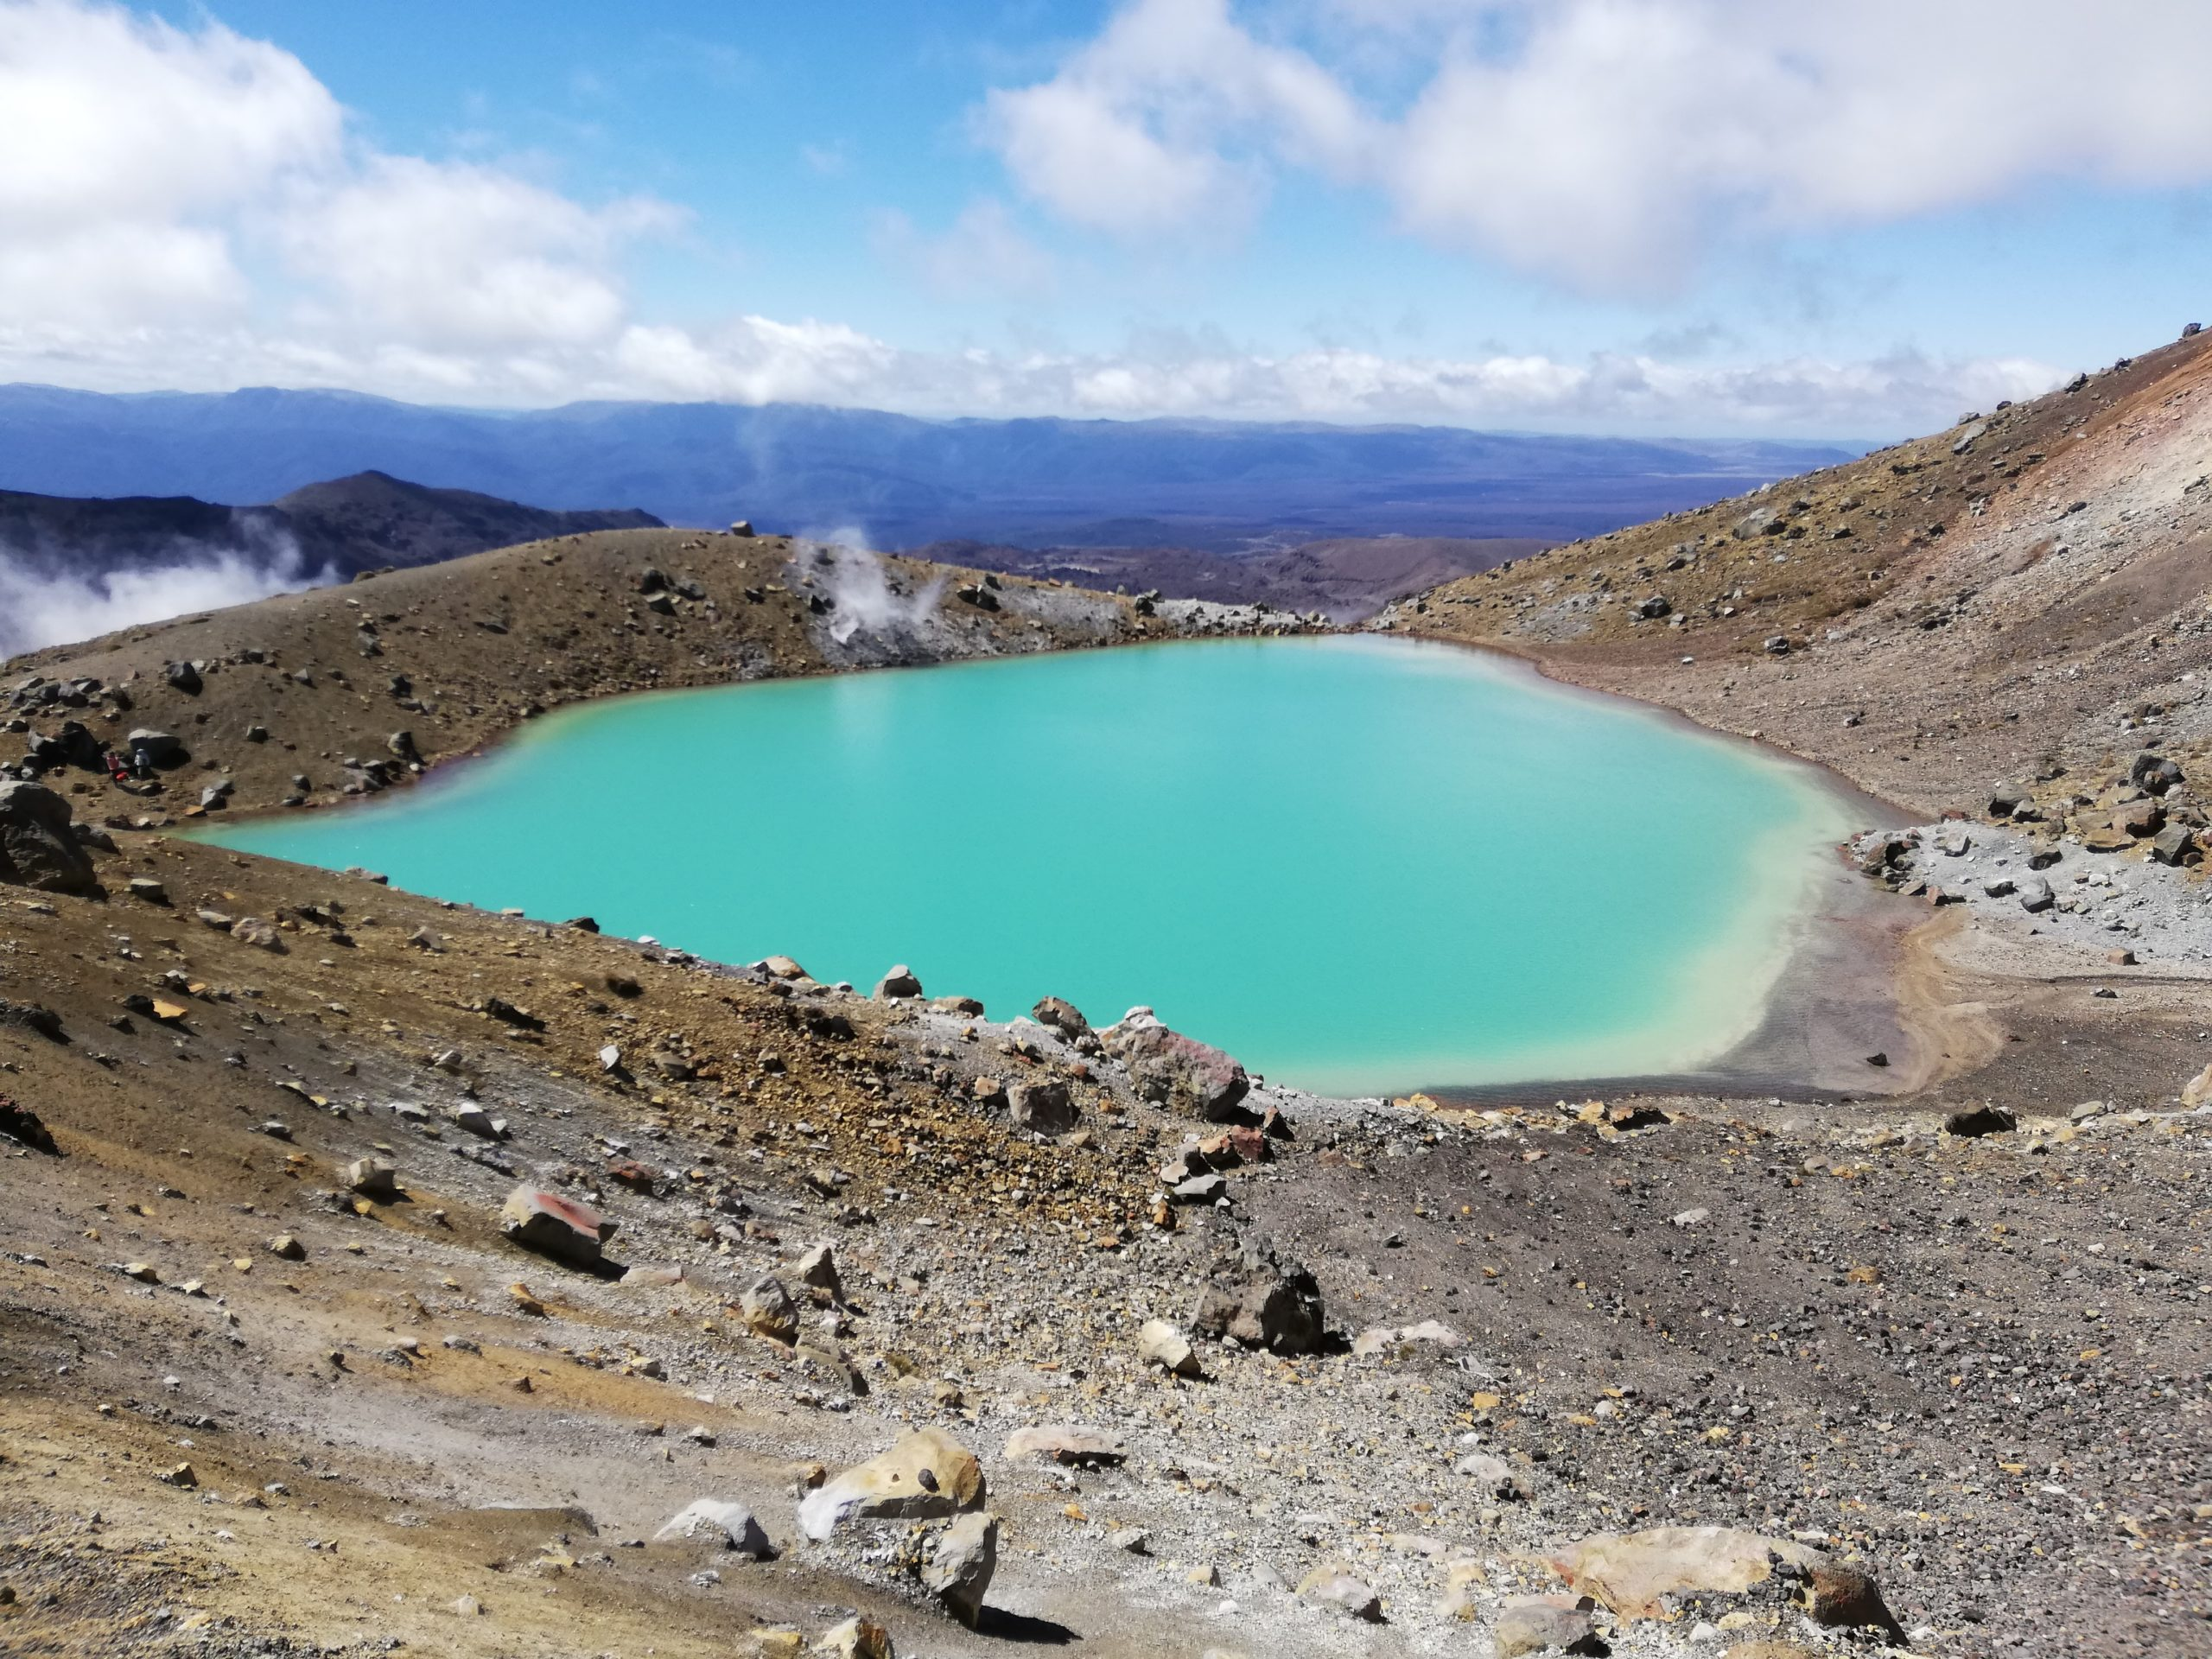 Tongariro has beautiful scenery such as the Emerald Lake, pictured